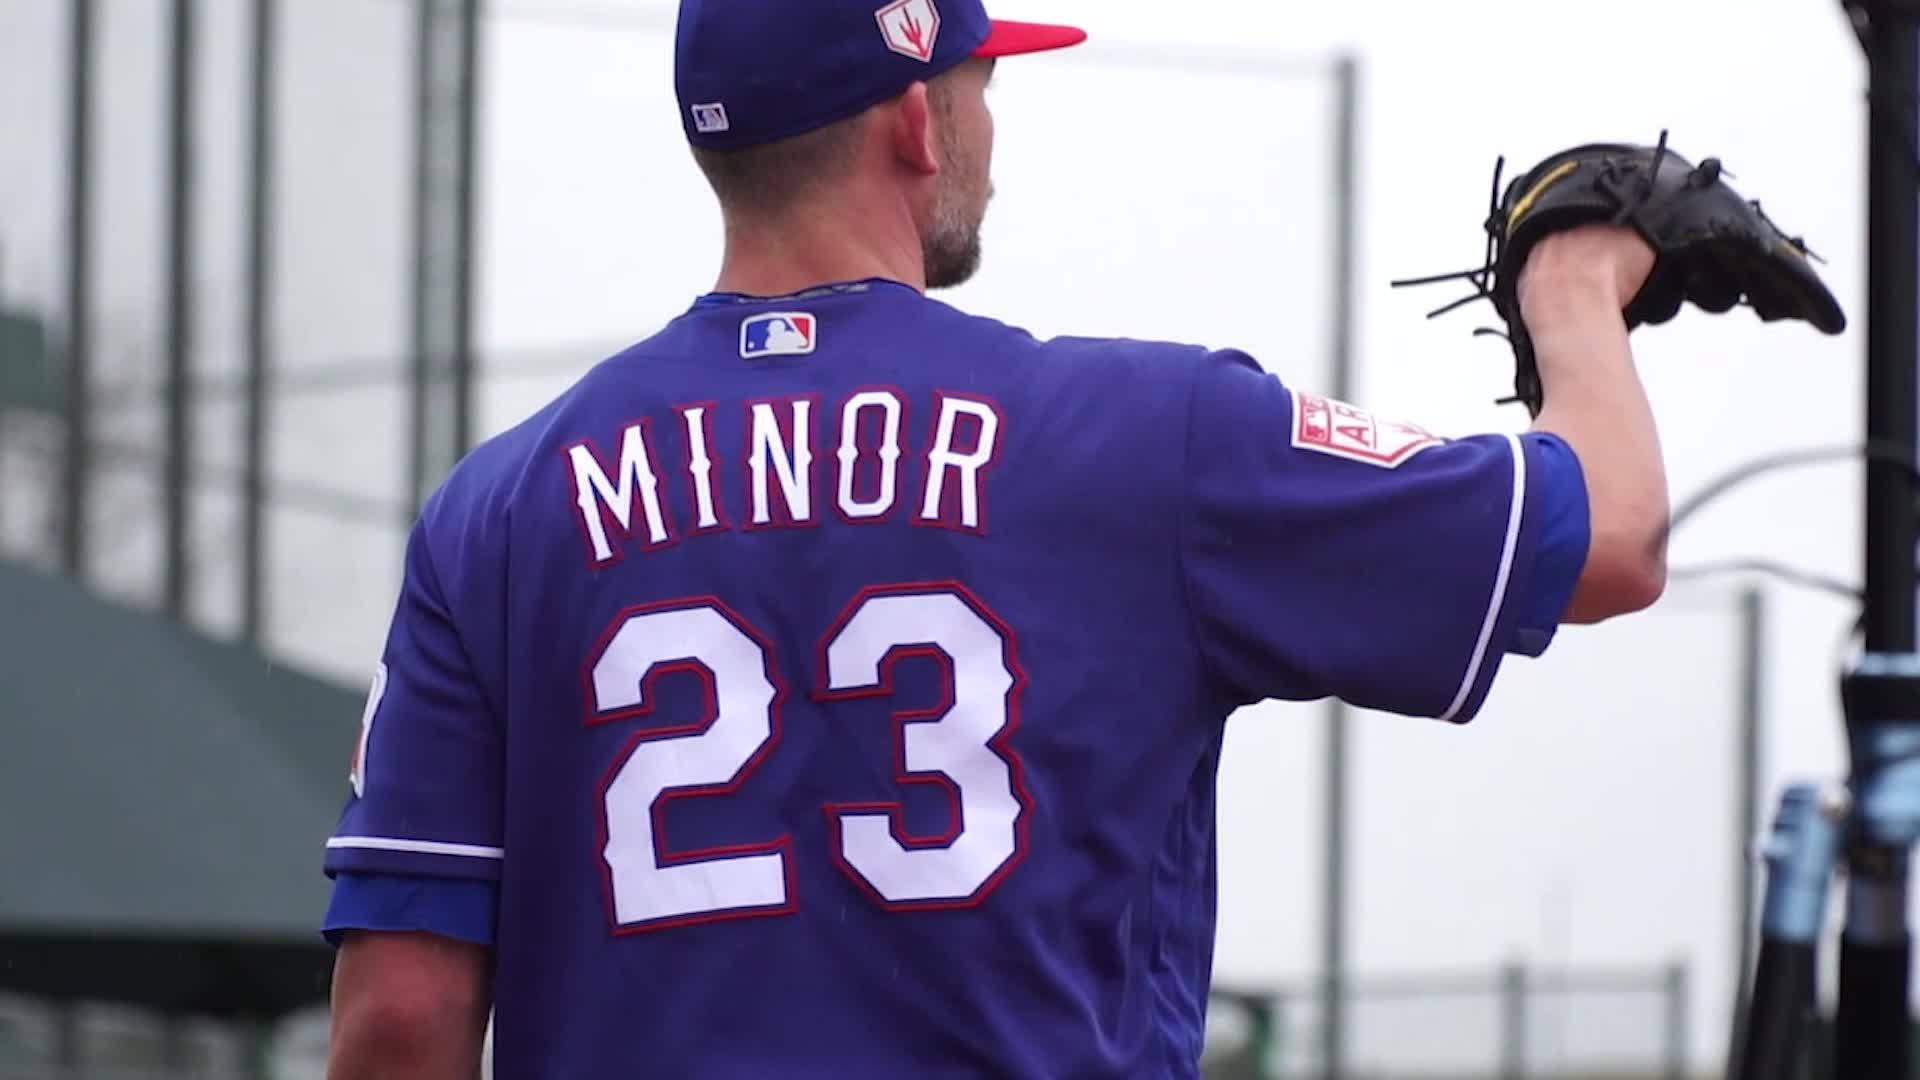 Texas_Rangers_pitching_hinges_on_shaky_a_7_20190306165033-3156084